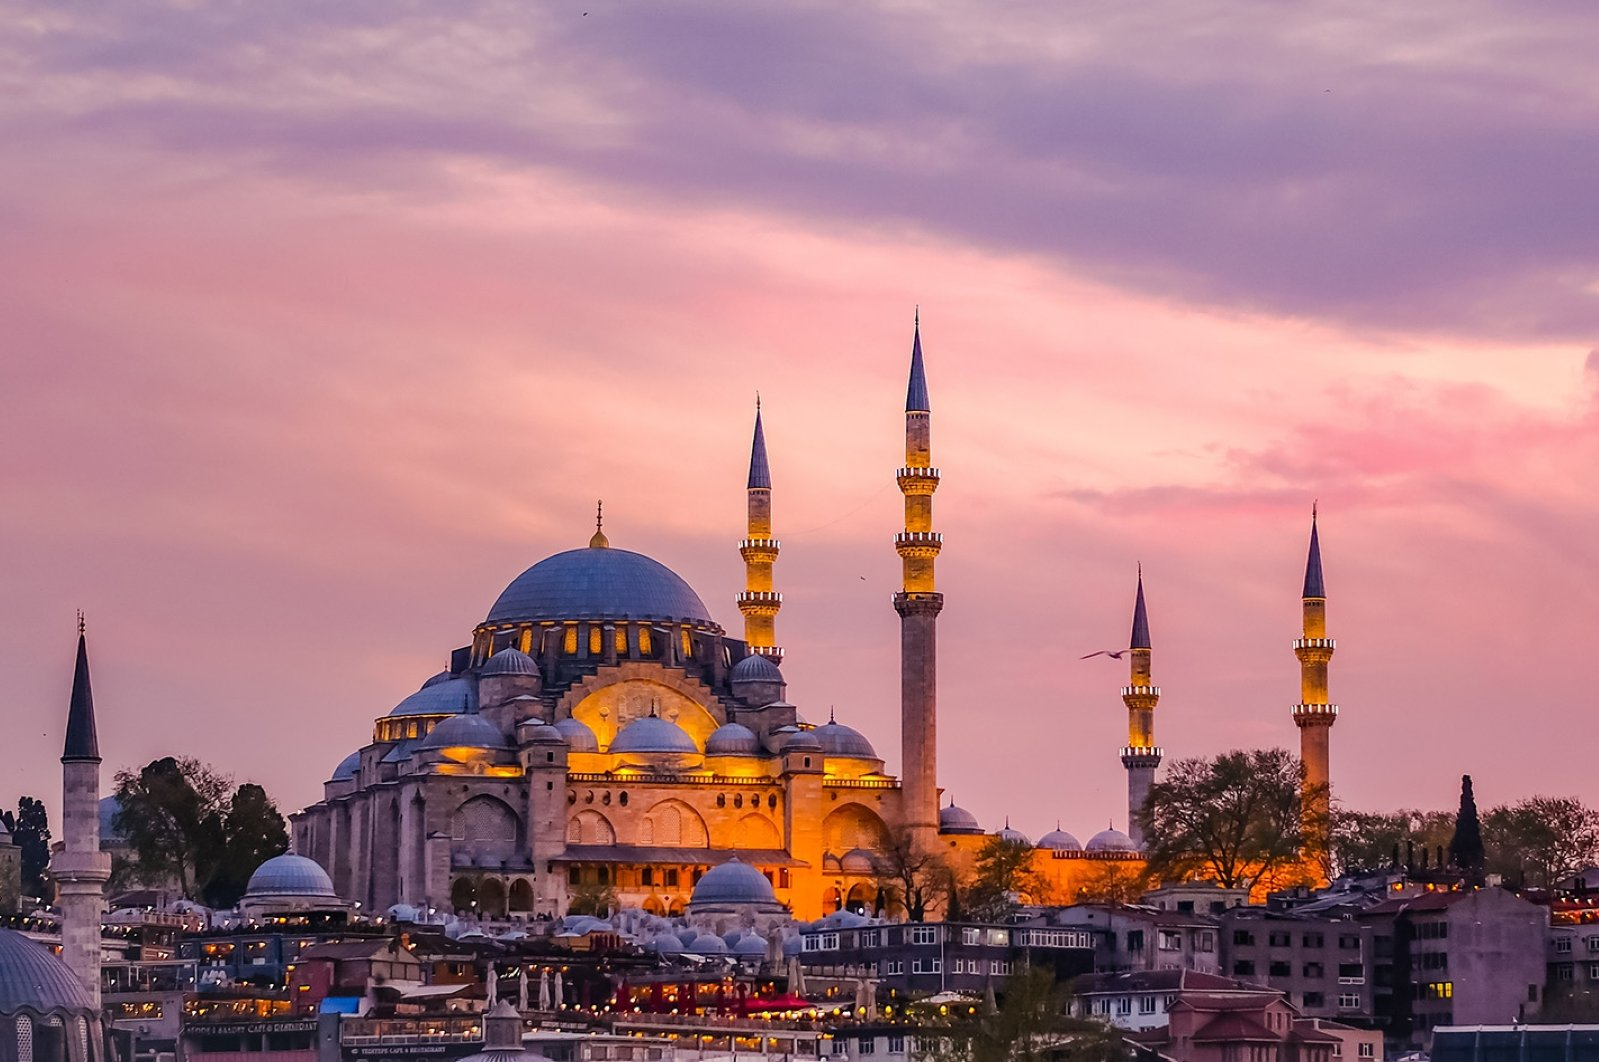 Like last year, mass iftar dinners will not be held in the courtyards of mosques such as the Süleymaniye Mosque (pictured) in Istanbul. (Shutterstock Photo)